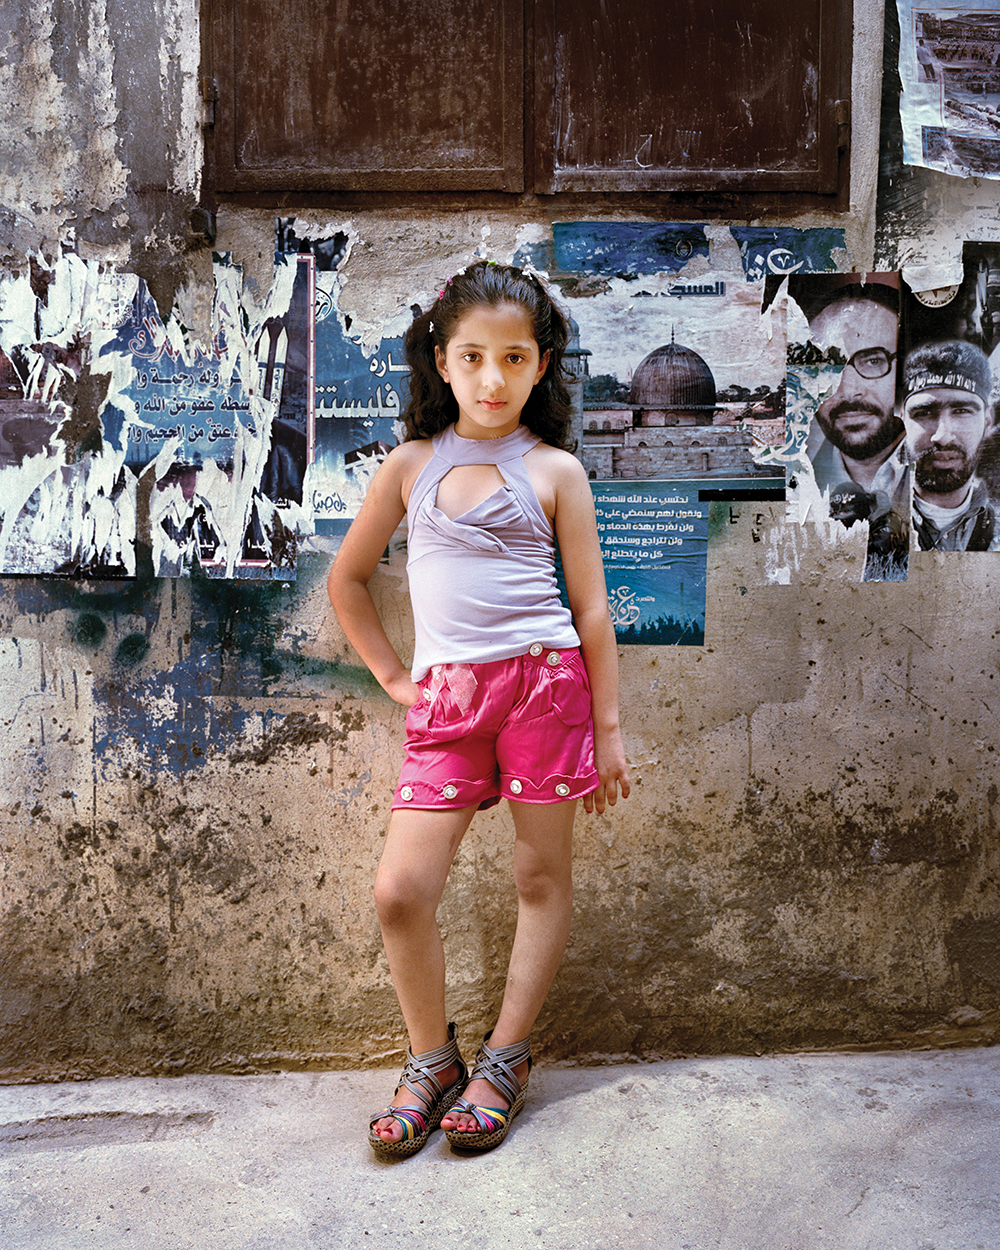 Dania at 9, Bourj El Barajneh Refugee Camp, Beirut Lebanon , 2011. Courtesy of Carrol and Sons.